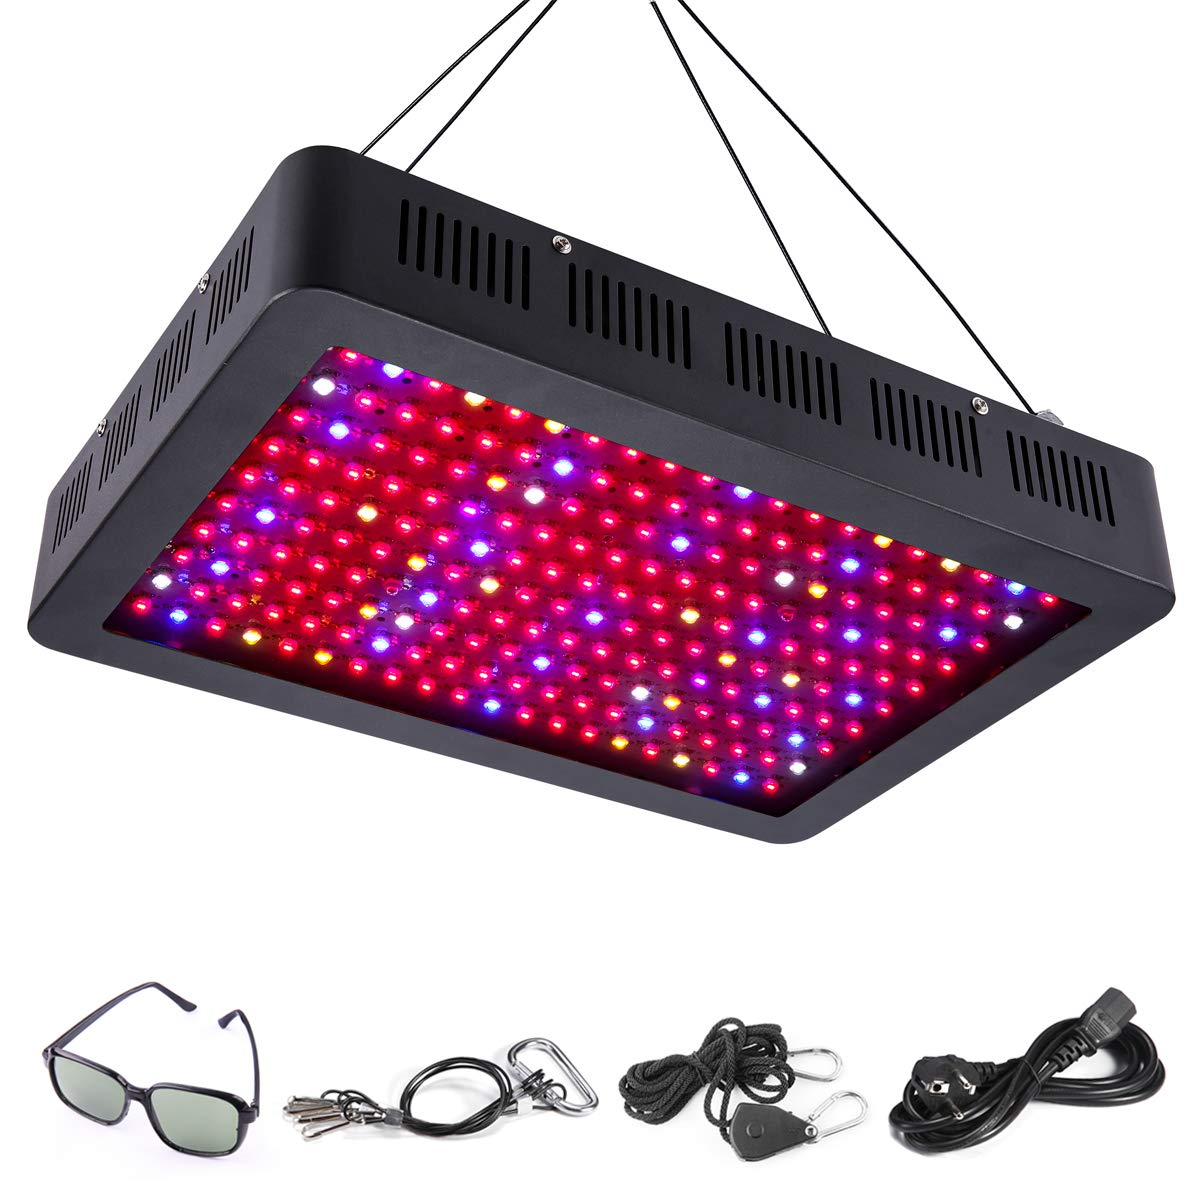 Elejolie 2000W LED Grow Light for Indoor Plants Full Spectrum Grow Lamp for Greenhouse Plant Light for Vegetables and Flowers by Elejolie